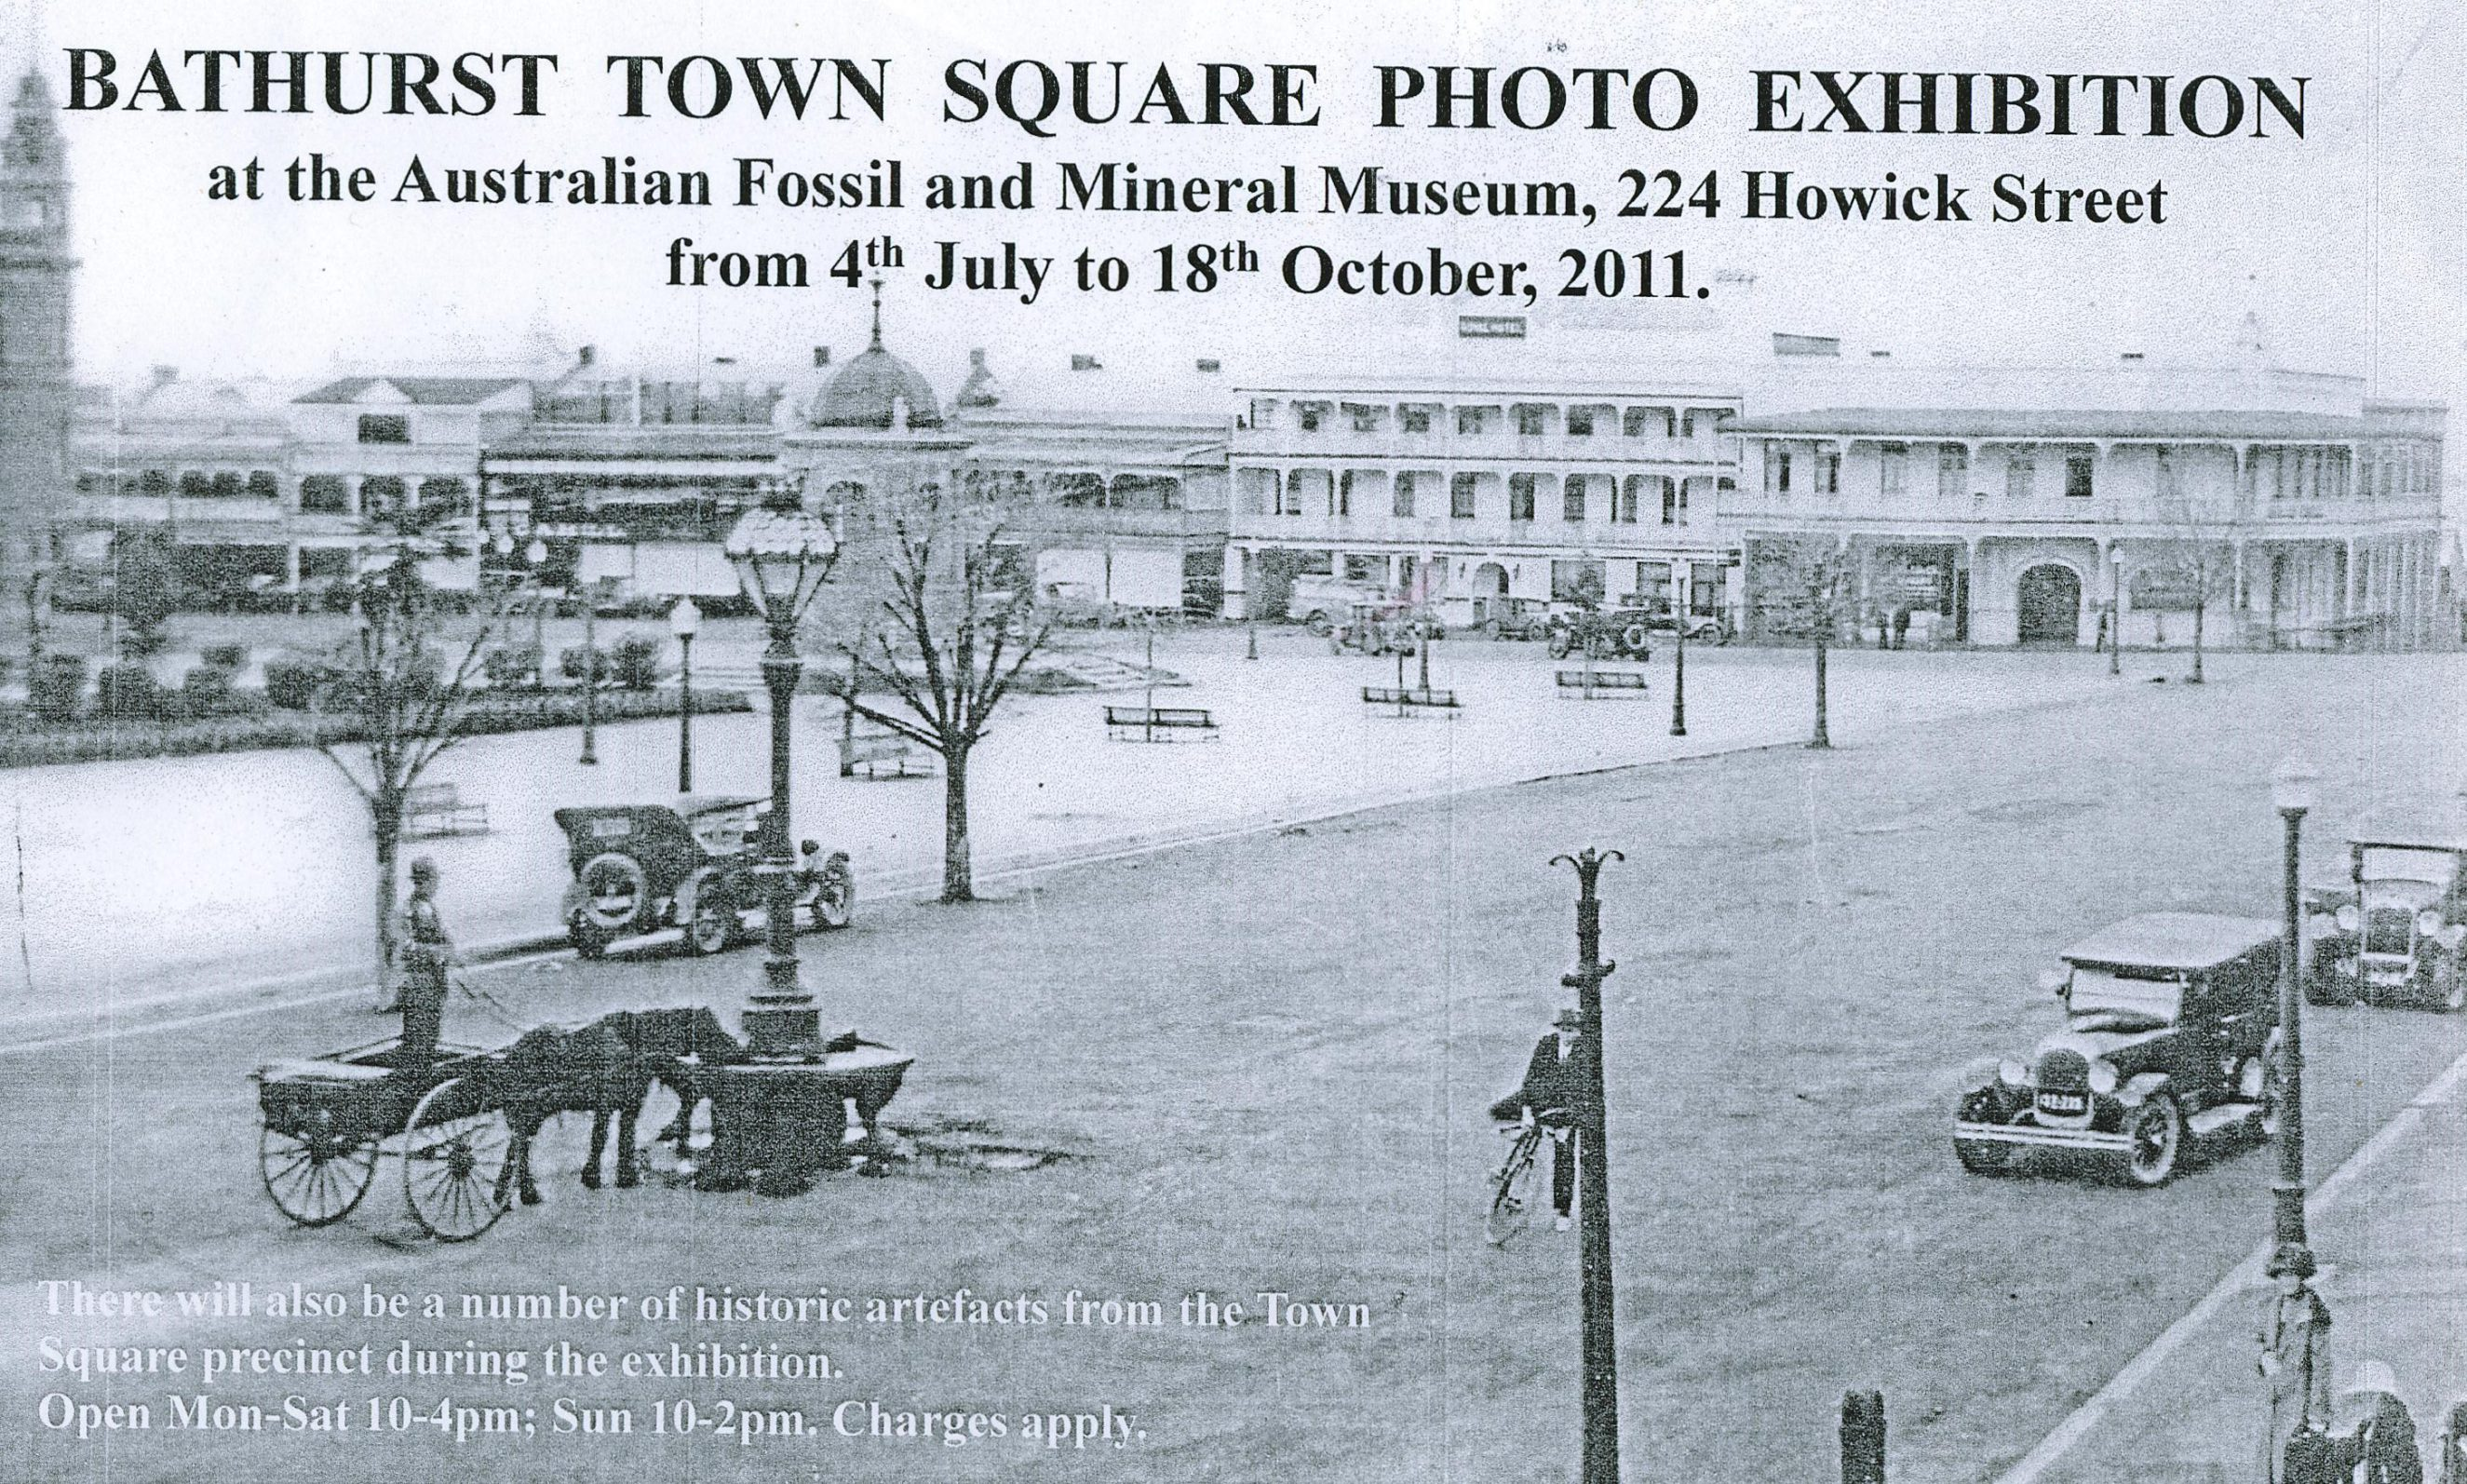 Bathurst Town Square Photograph Exhibition 2011 - Horse Trough, Russell Street